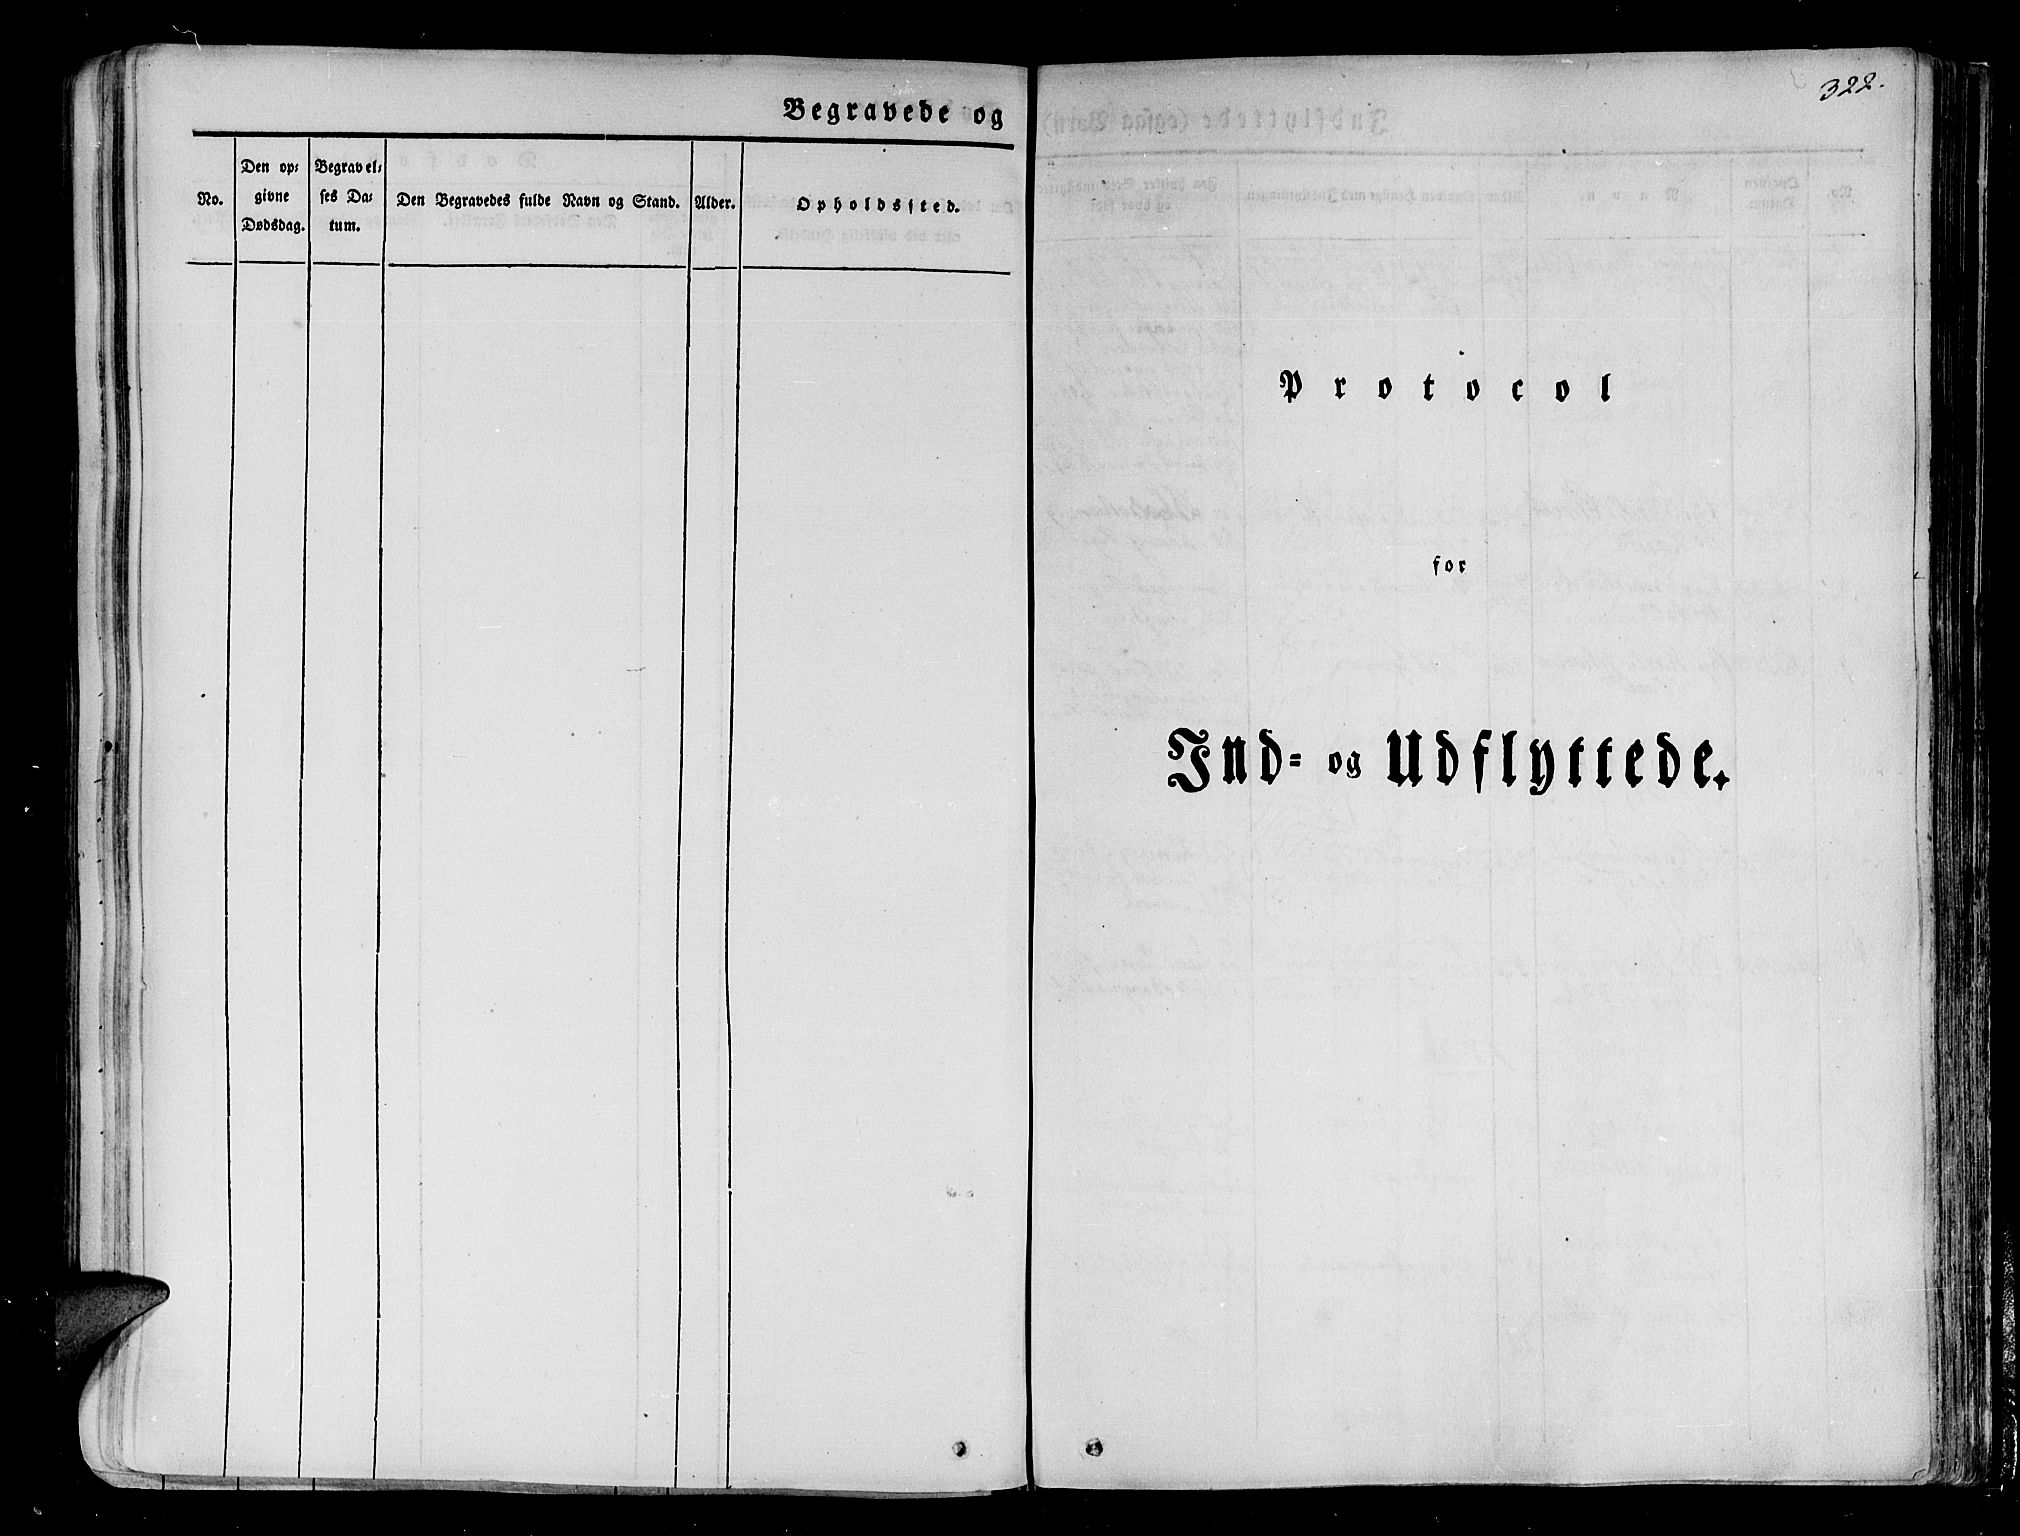 SATØ, Tranøy sokneprestkontor, I/Ia/Iaa/L0005kirke: Parish register (official) no. 5, 1829-1844, p. 322